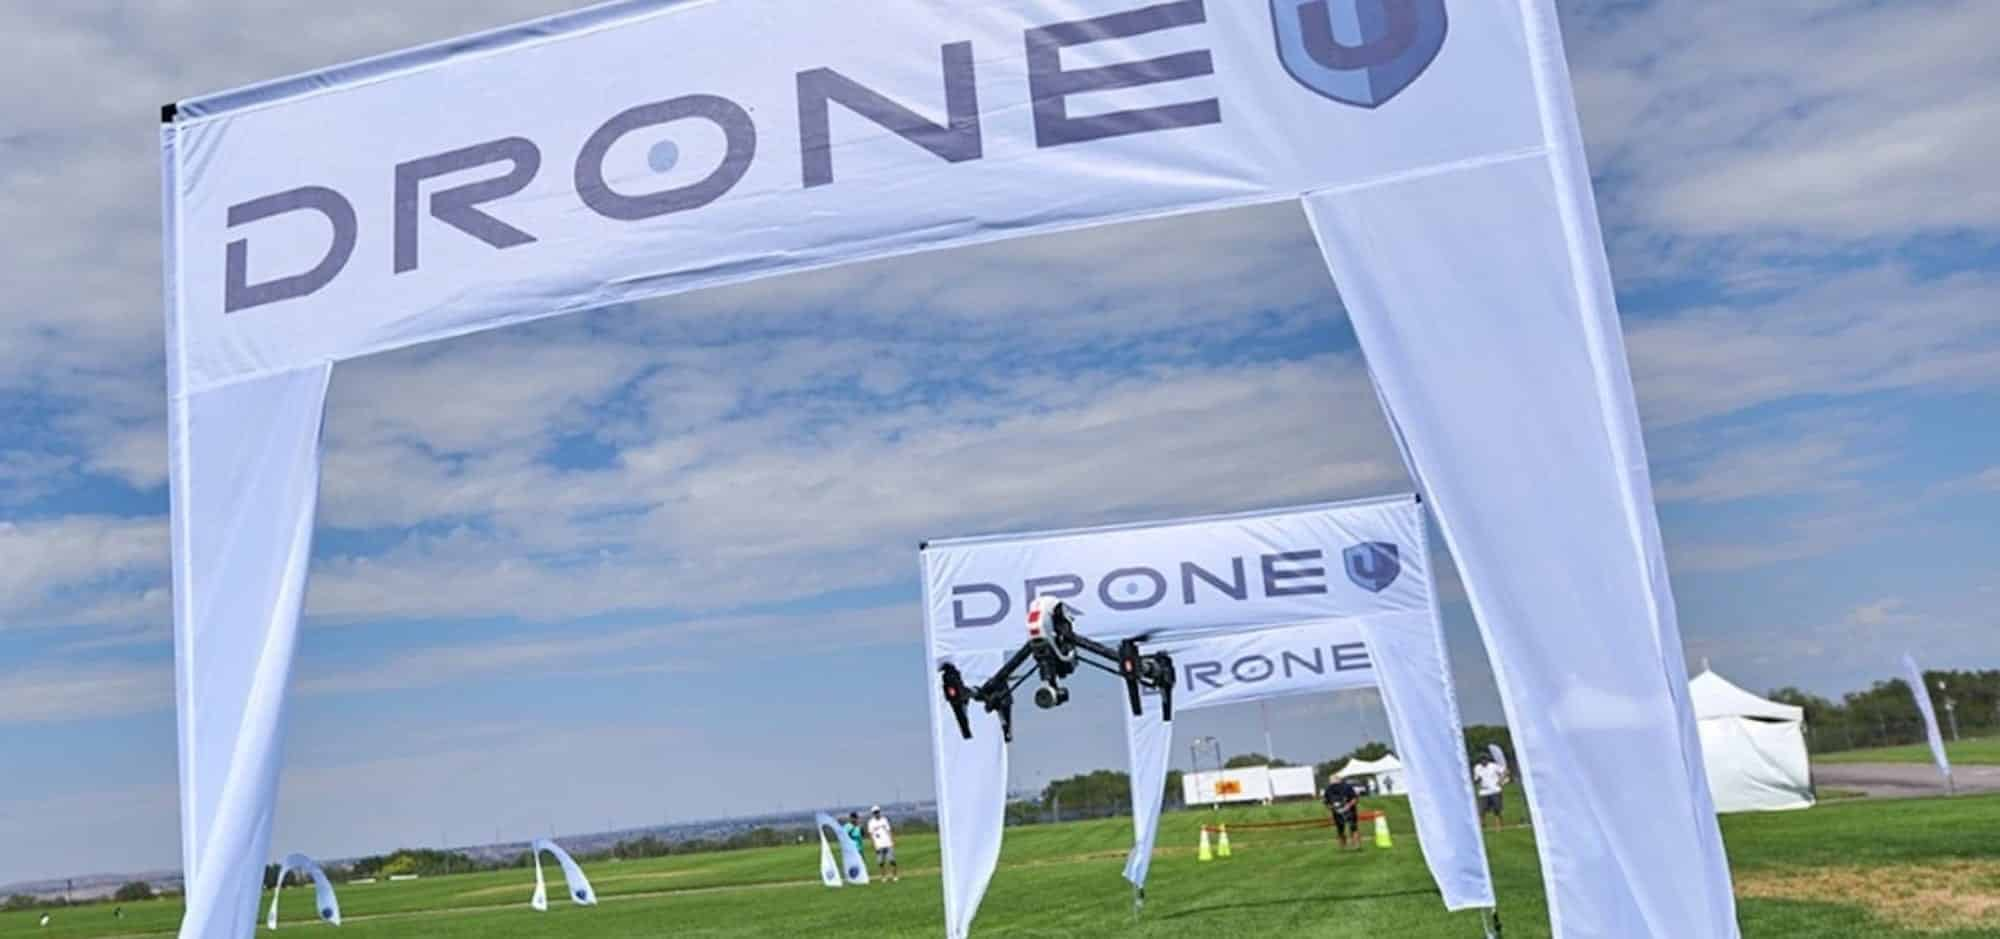 Exclusive offer: $75 discount on The Drone U classes